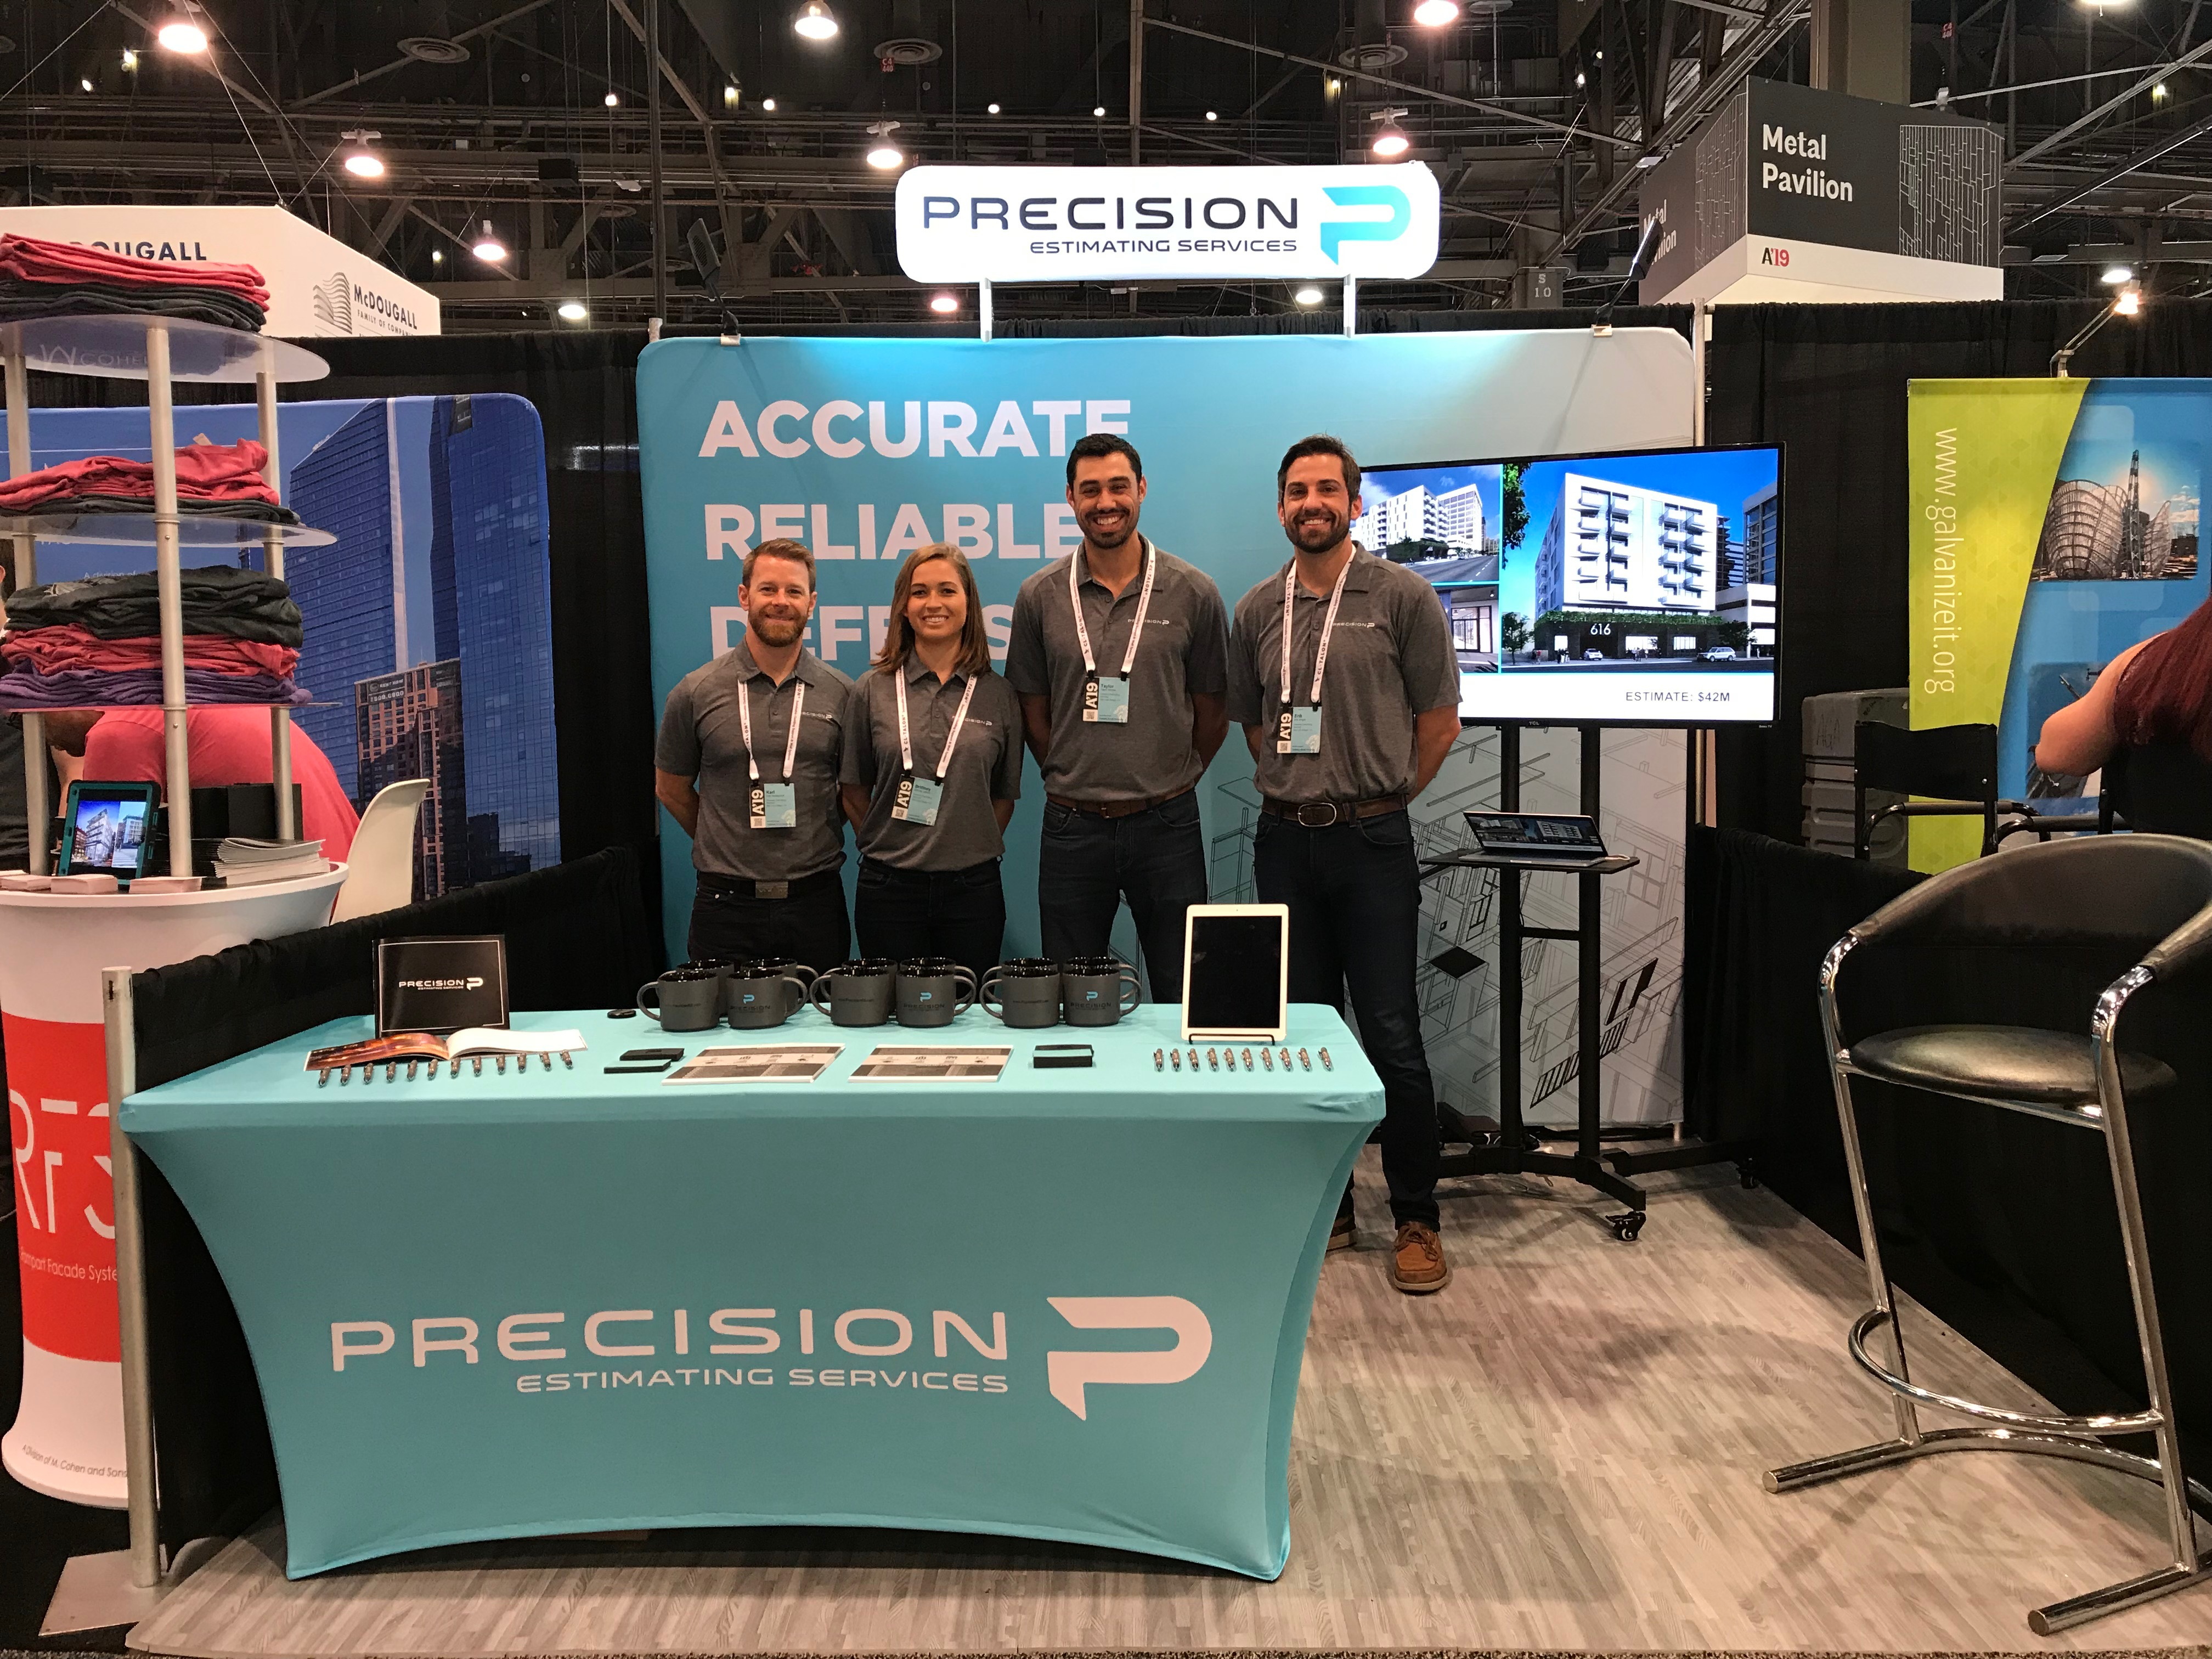 Precision team members at the AIA conference in Las Vegas, Nevada.